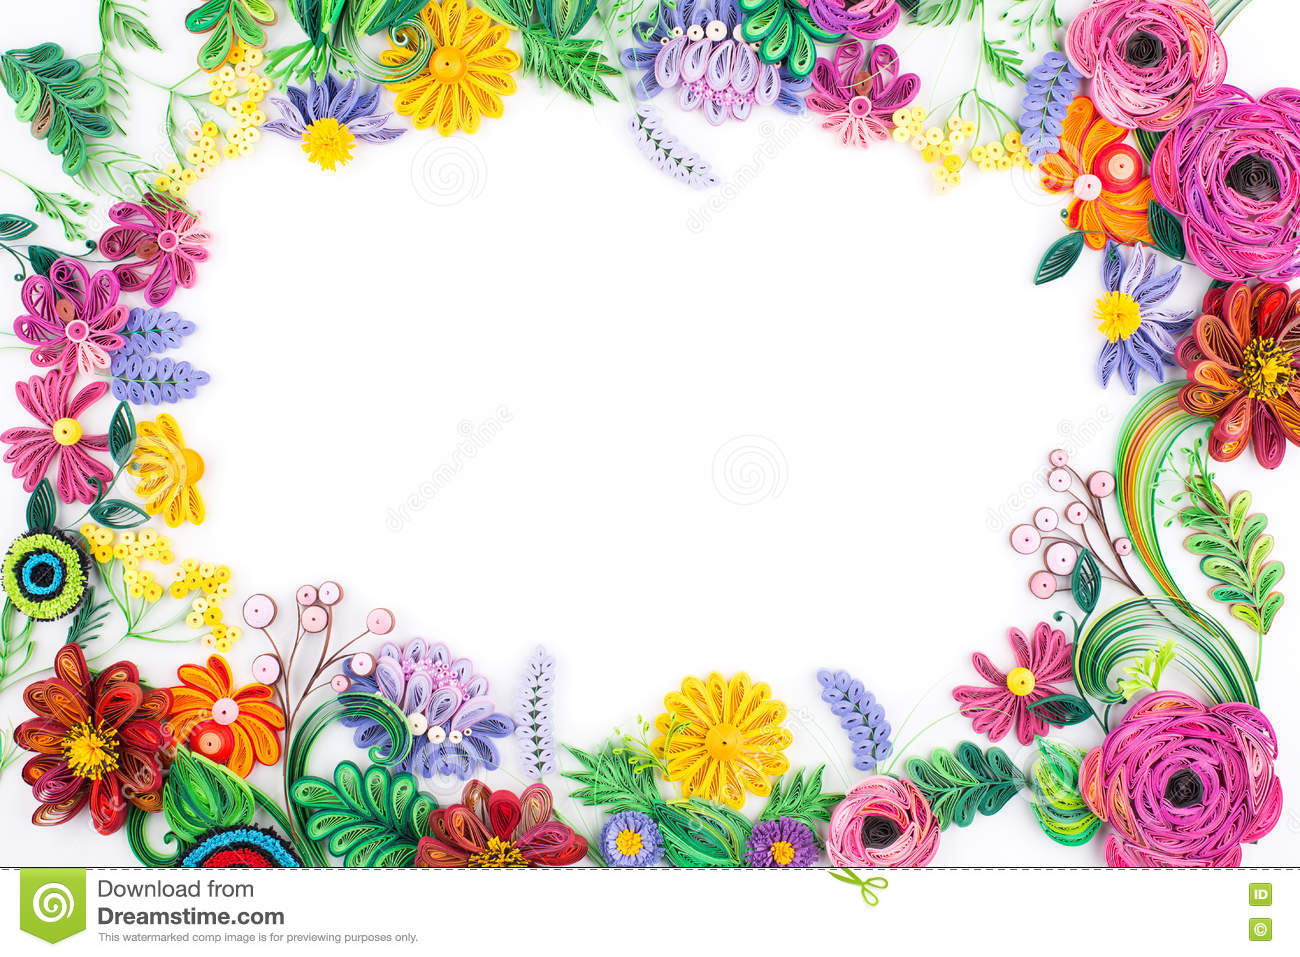 Paper quillingcolorful paper flowers stock image image of flower paper quillingcolorful paper flowers mightylinksfo